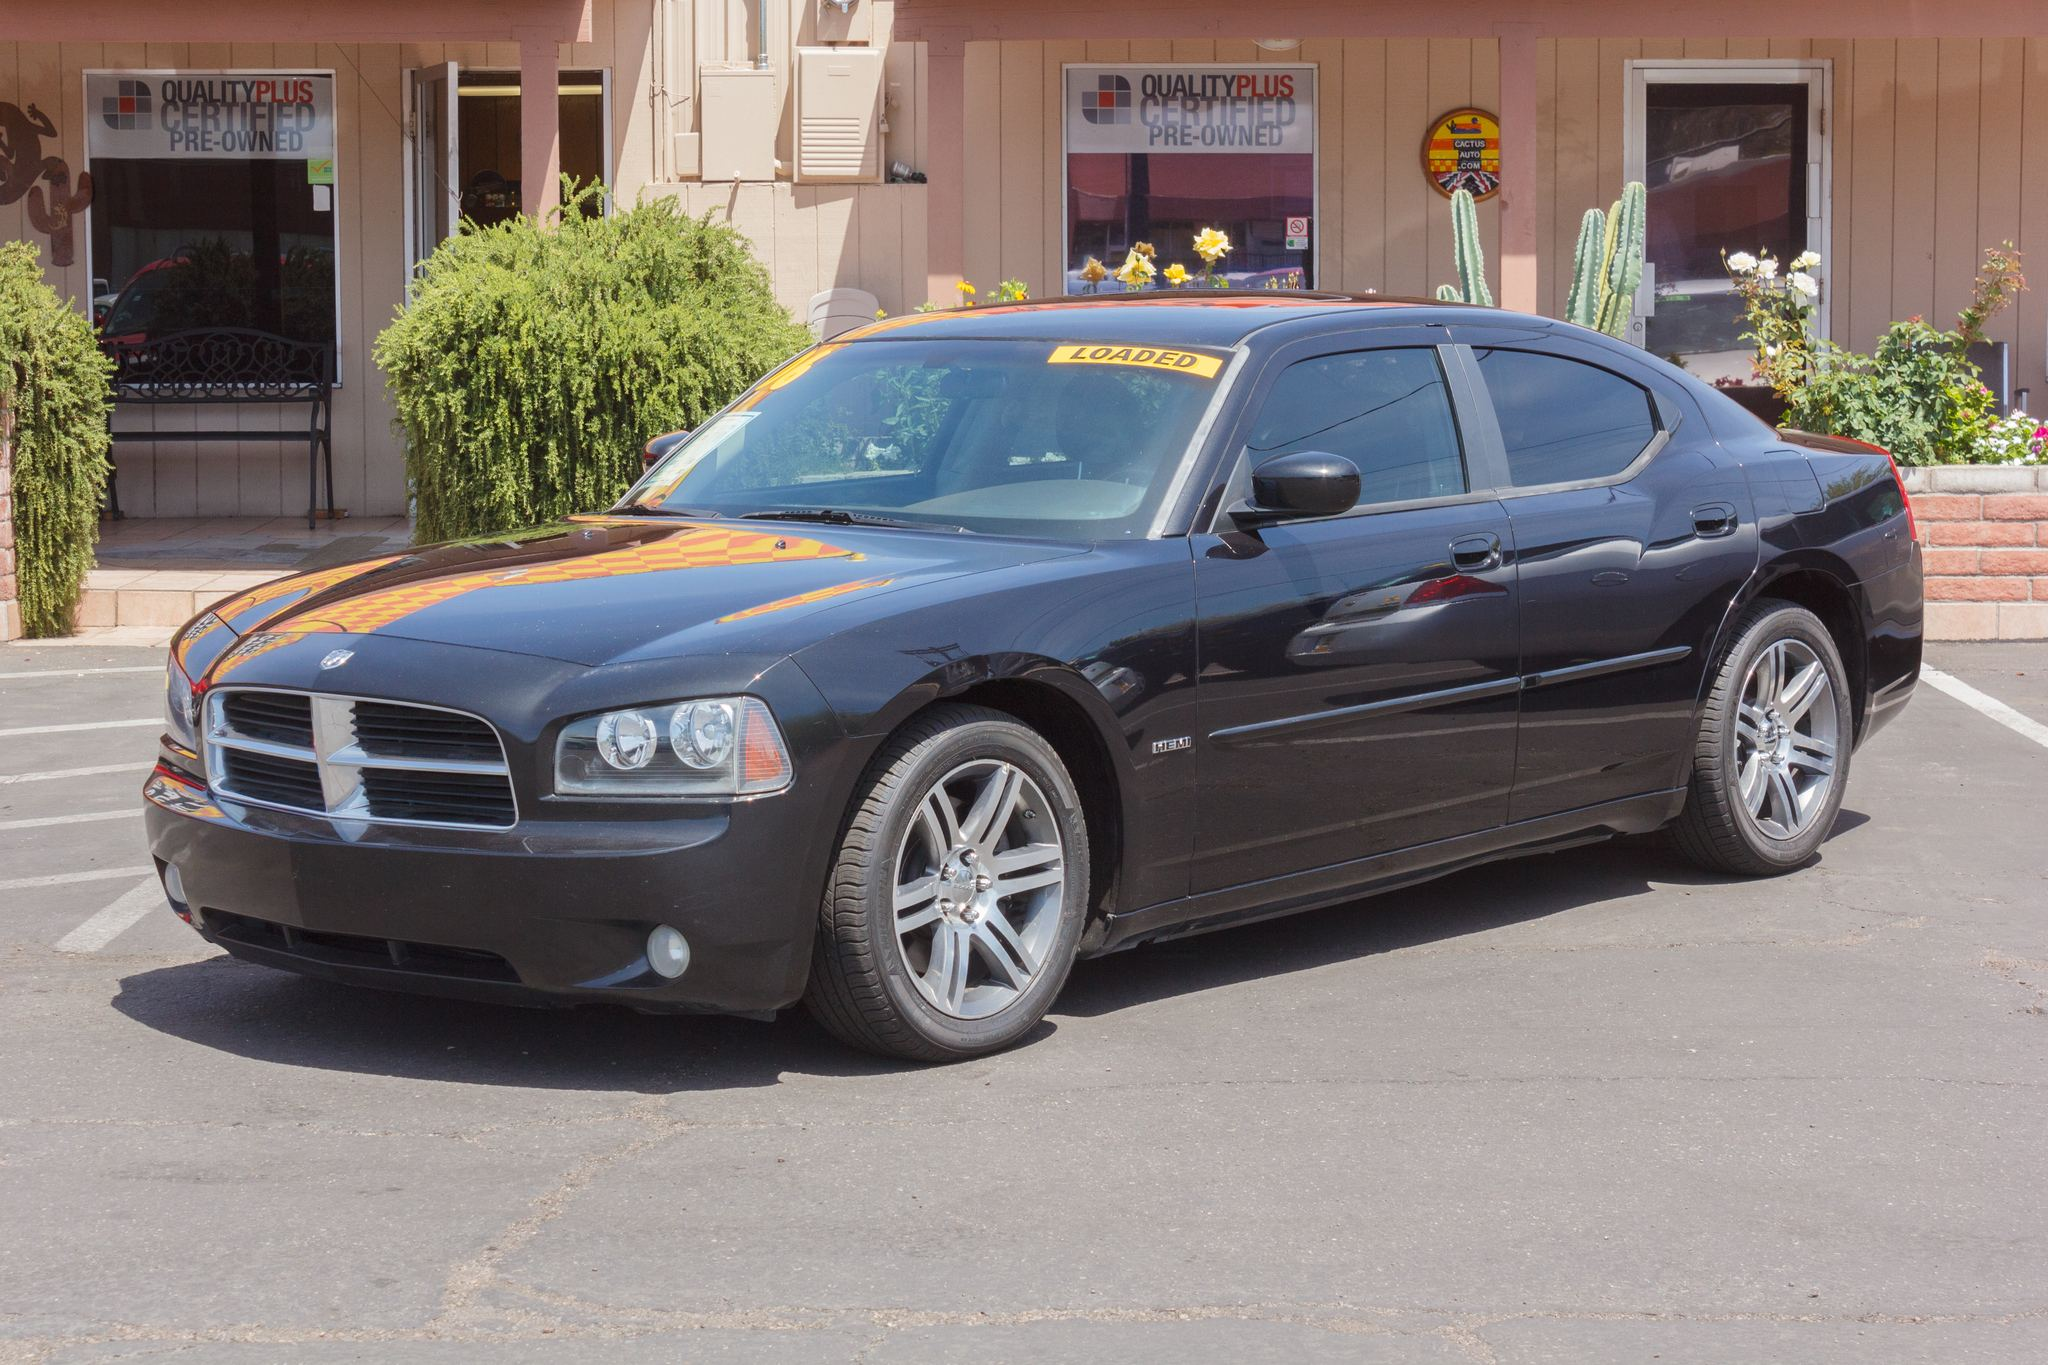 Photo of 2006 Dodge Charger 4d Sedan R/T Brilliant Black Crystal Pearlcoat